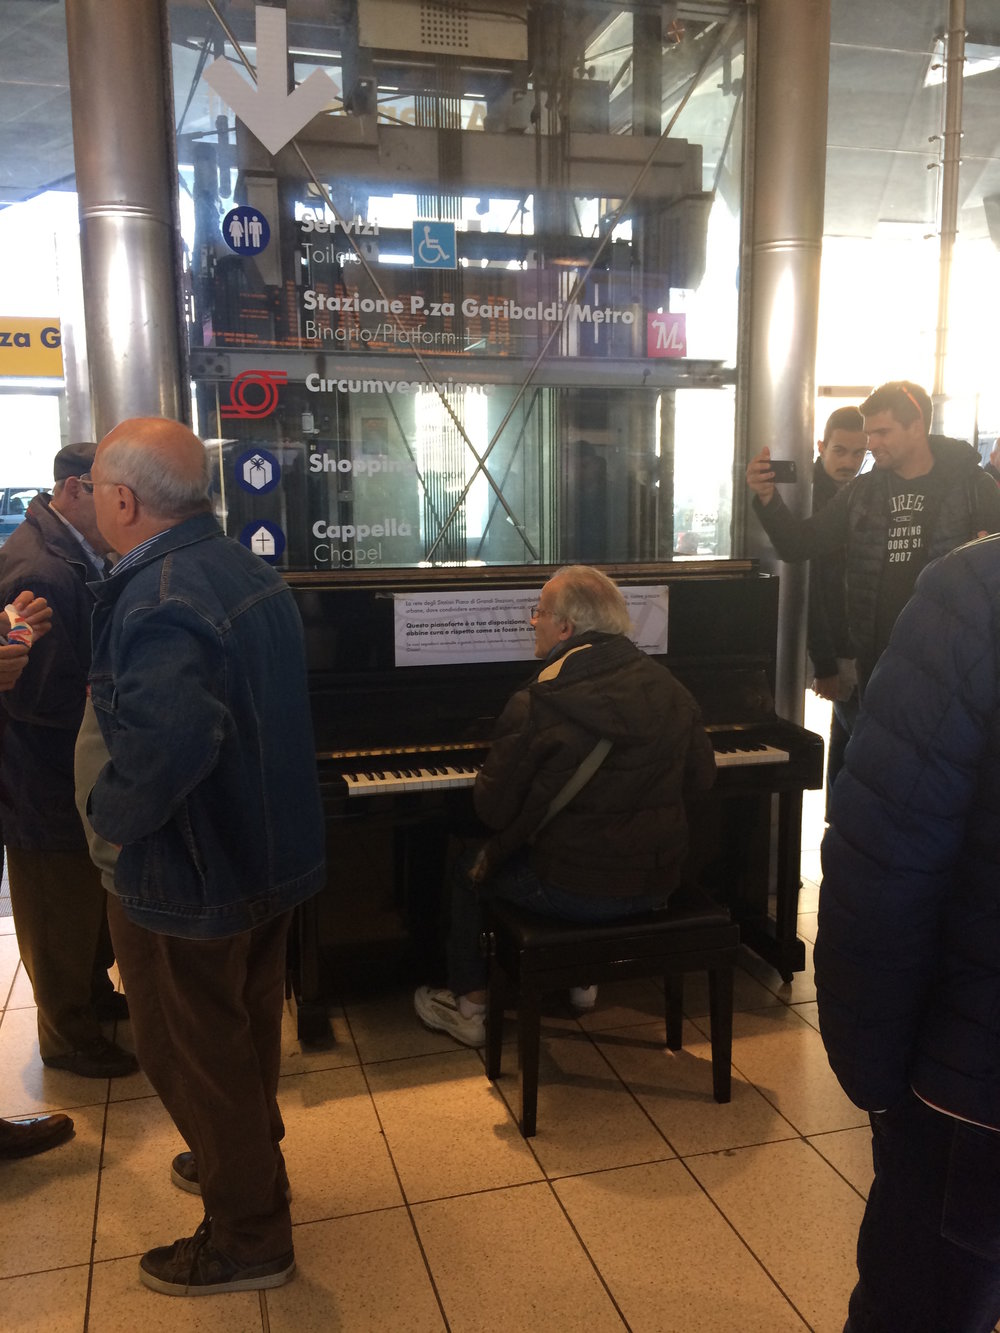 Though regretfully not taken the same day as my recent musical encounter, there is always some sort of show to be found a Napoli's central station and her piano.